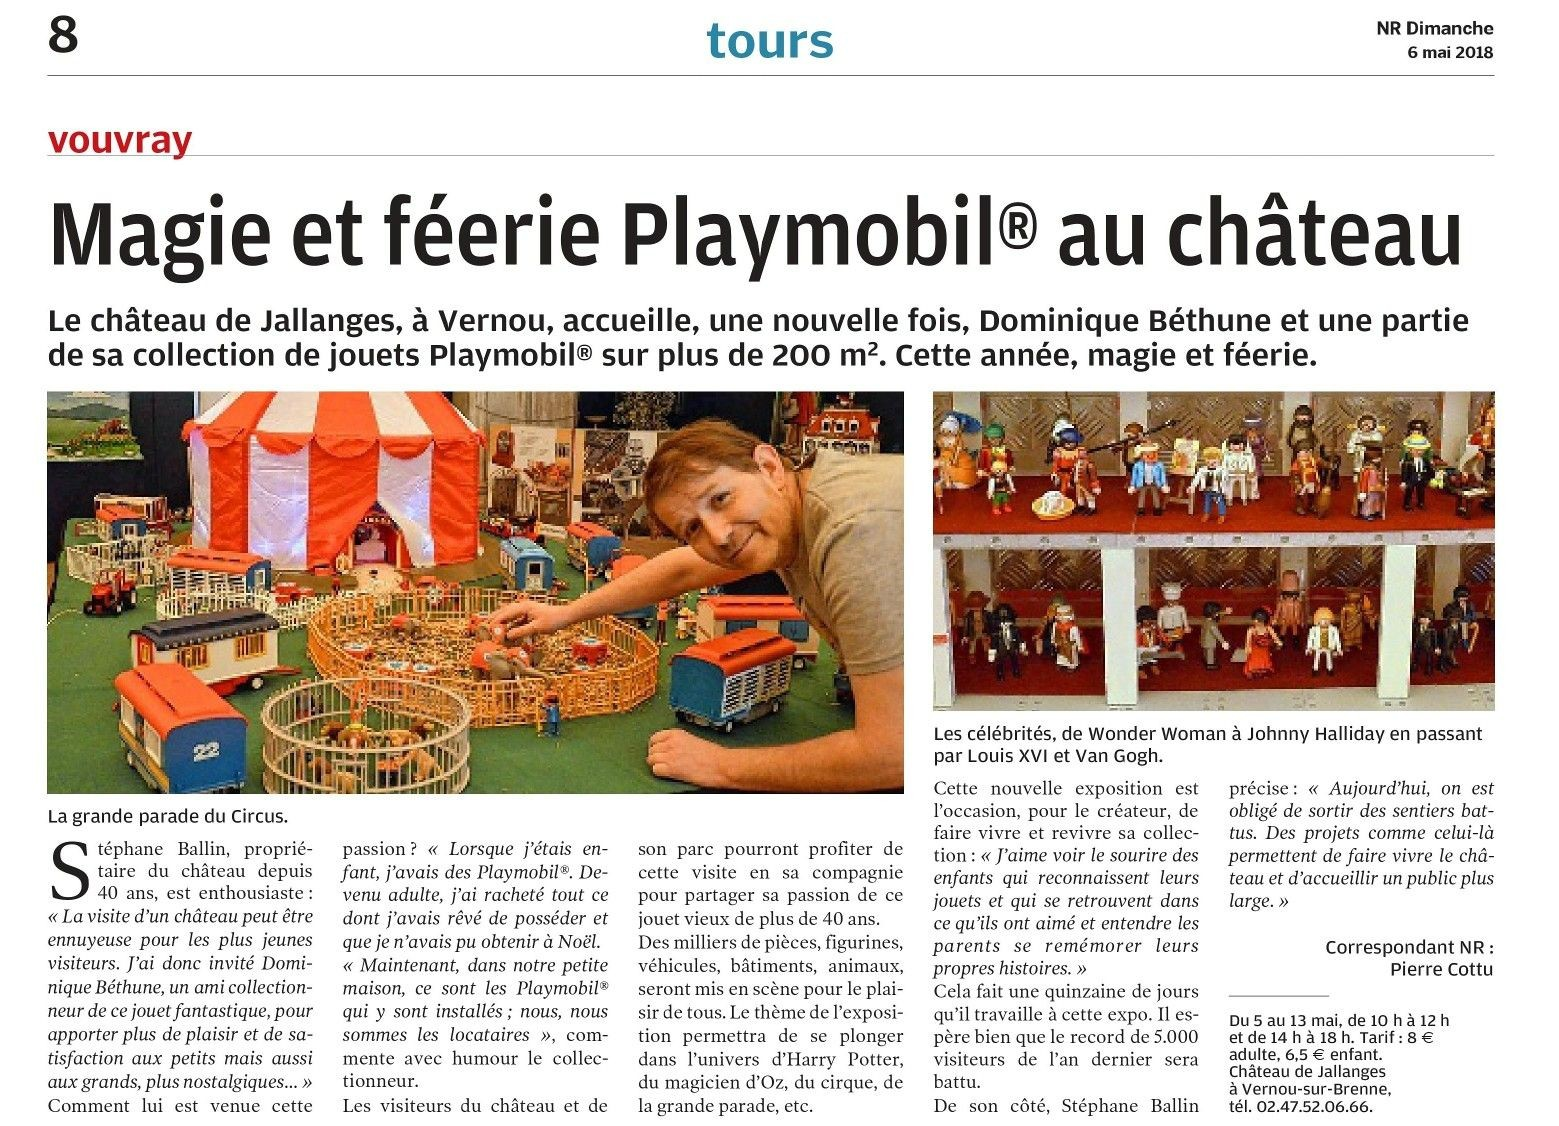 Exposition Playmobil à Jallanges